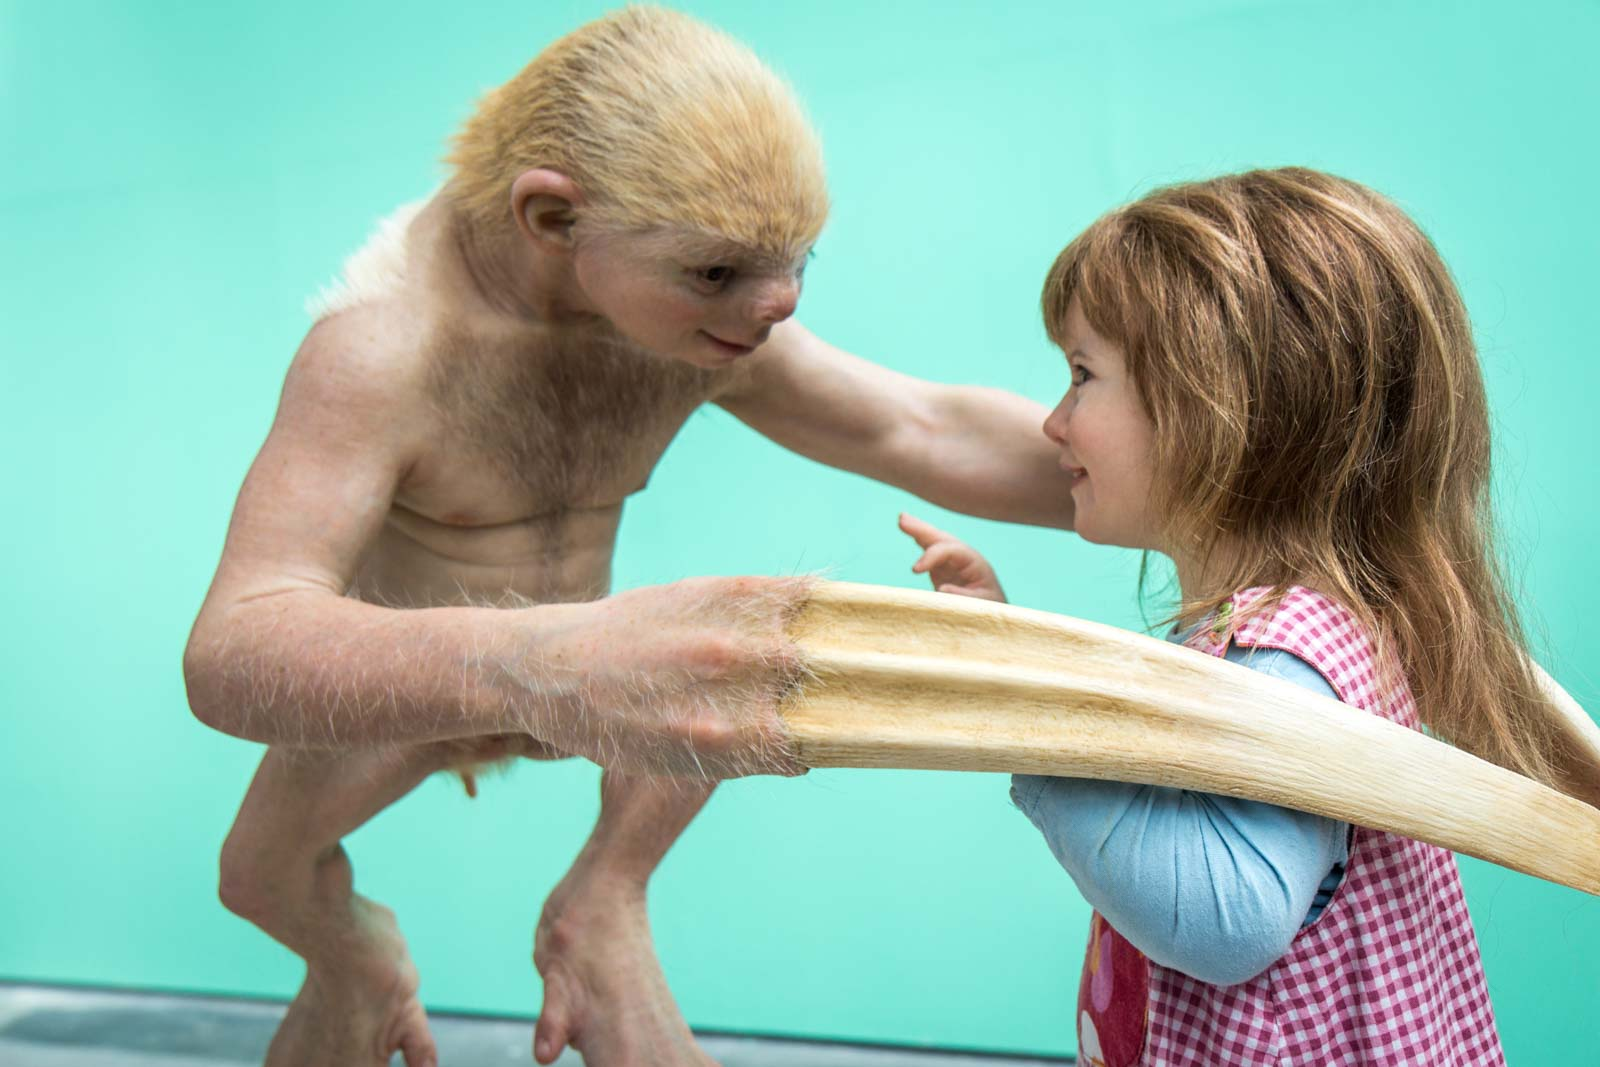 Patricia Piccinini exhibition artworks